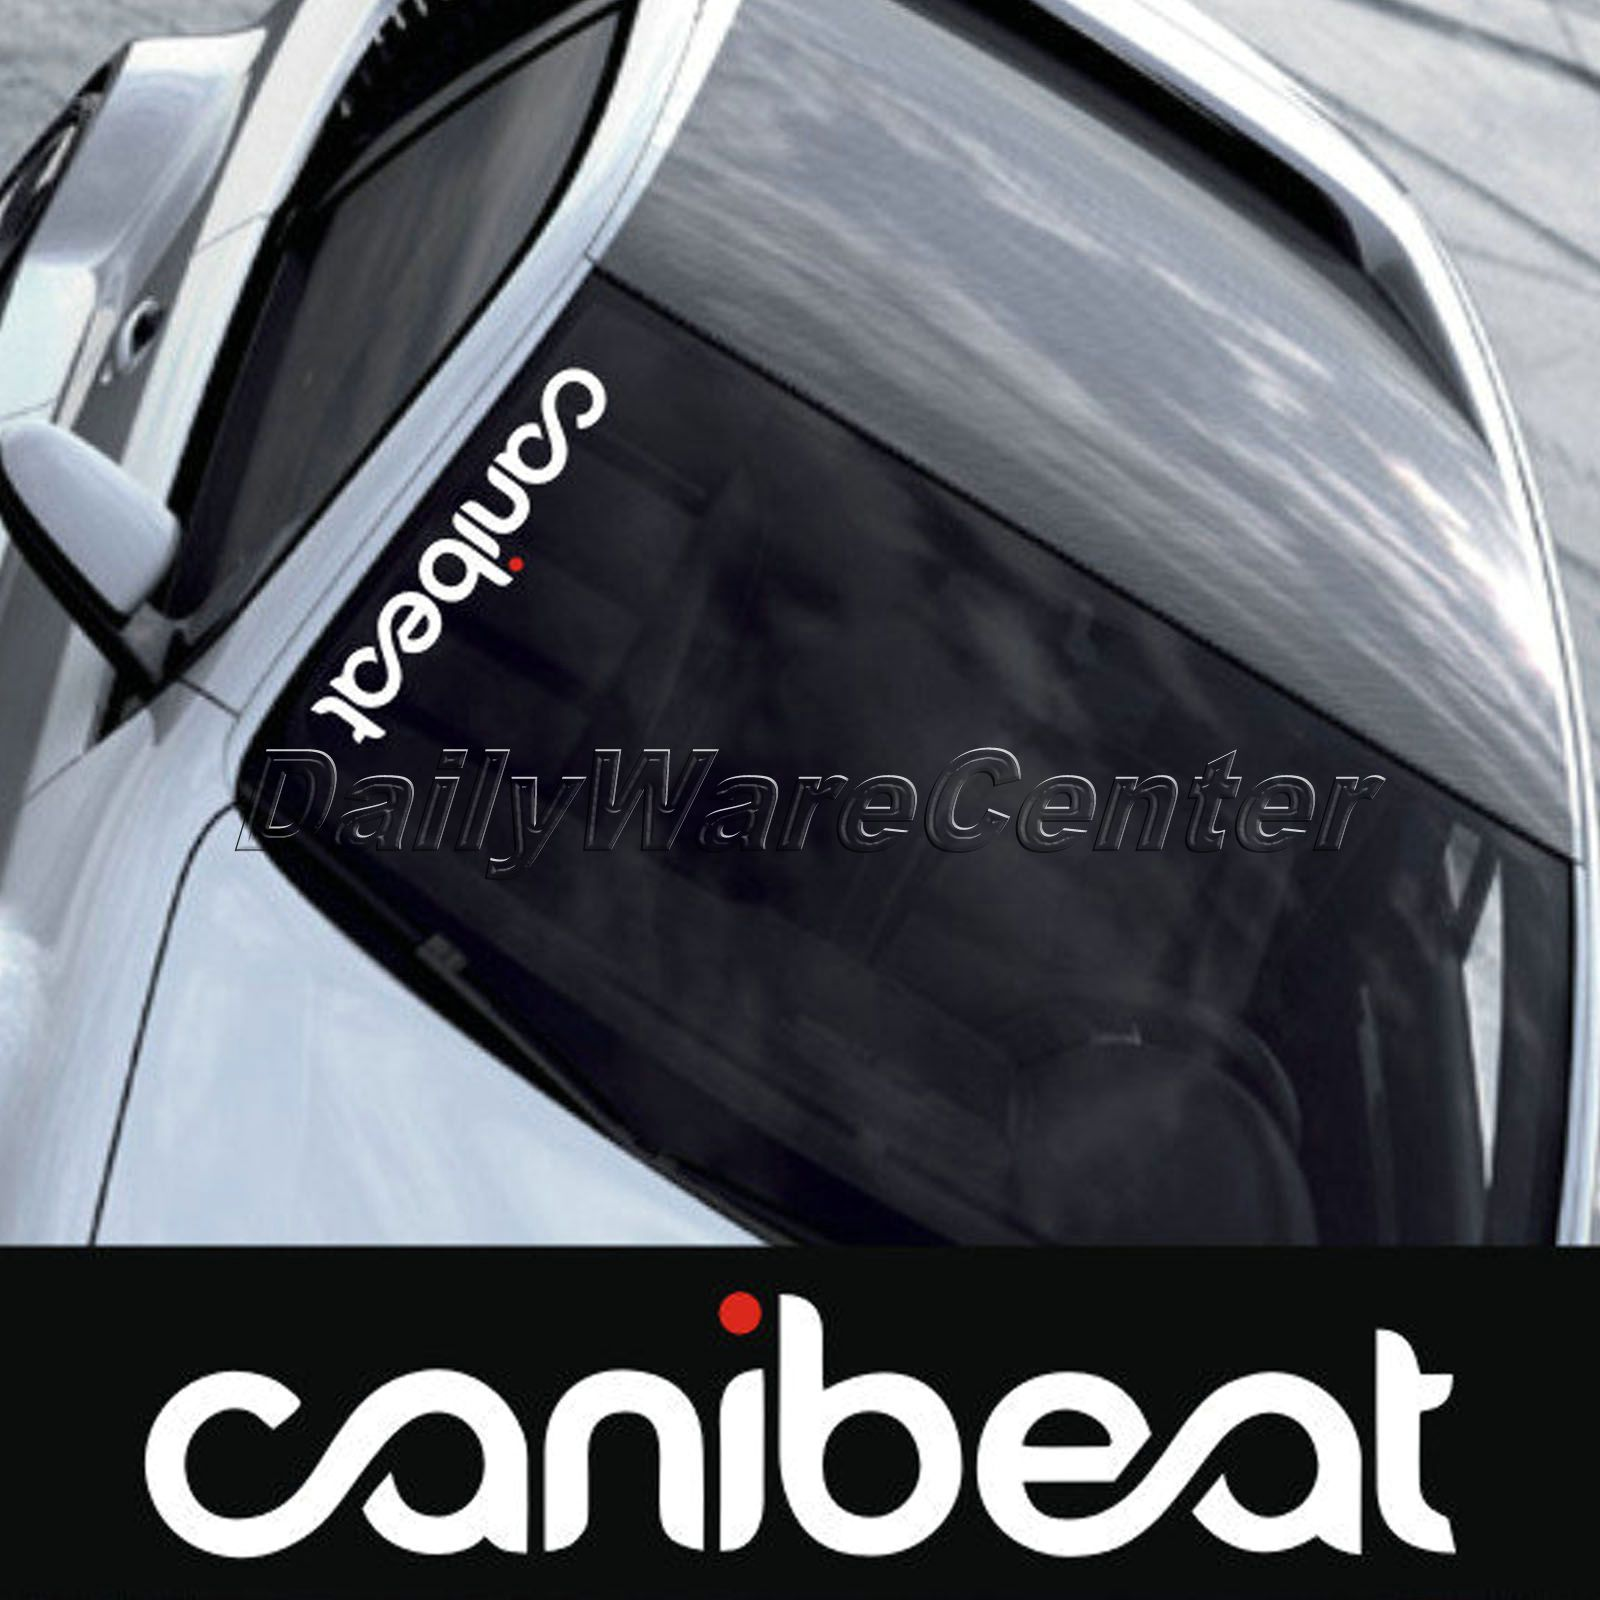 US $5 05 11% OFF 2016 New reflective waterproof cool funny hellaflush  canibeat modified die cut car sticker for front windshield-in Car Stickers  from